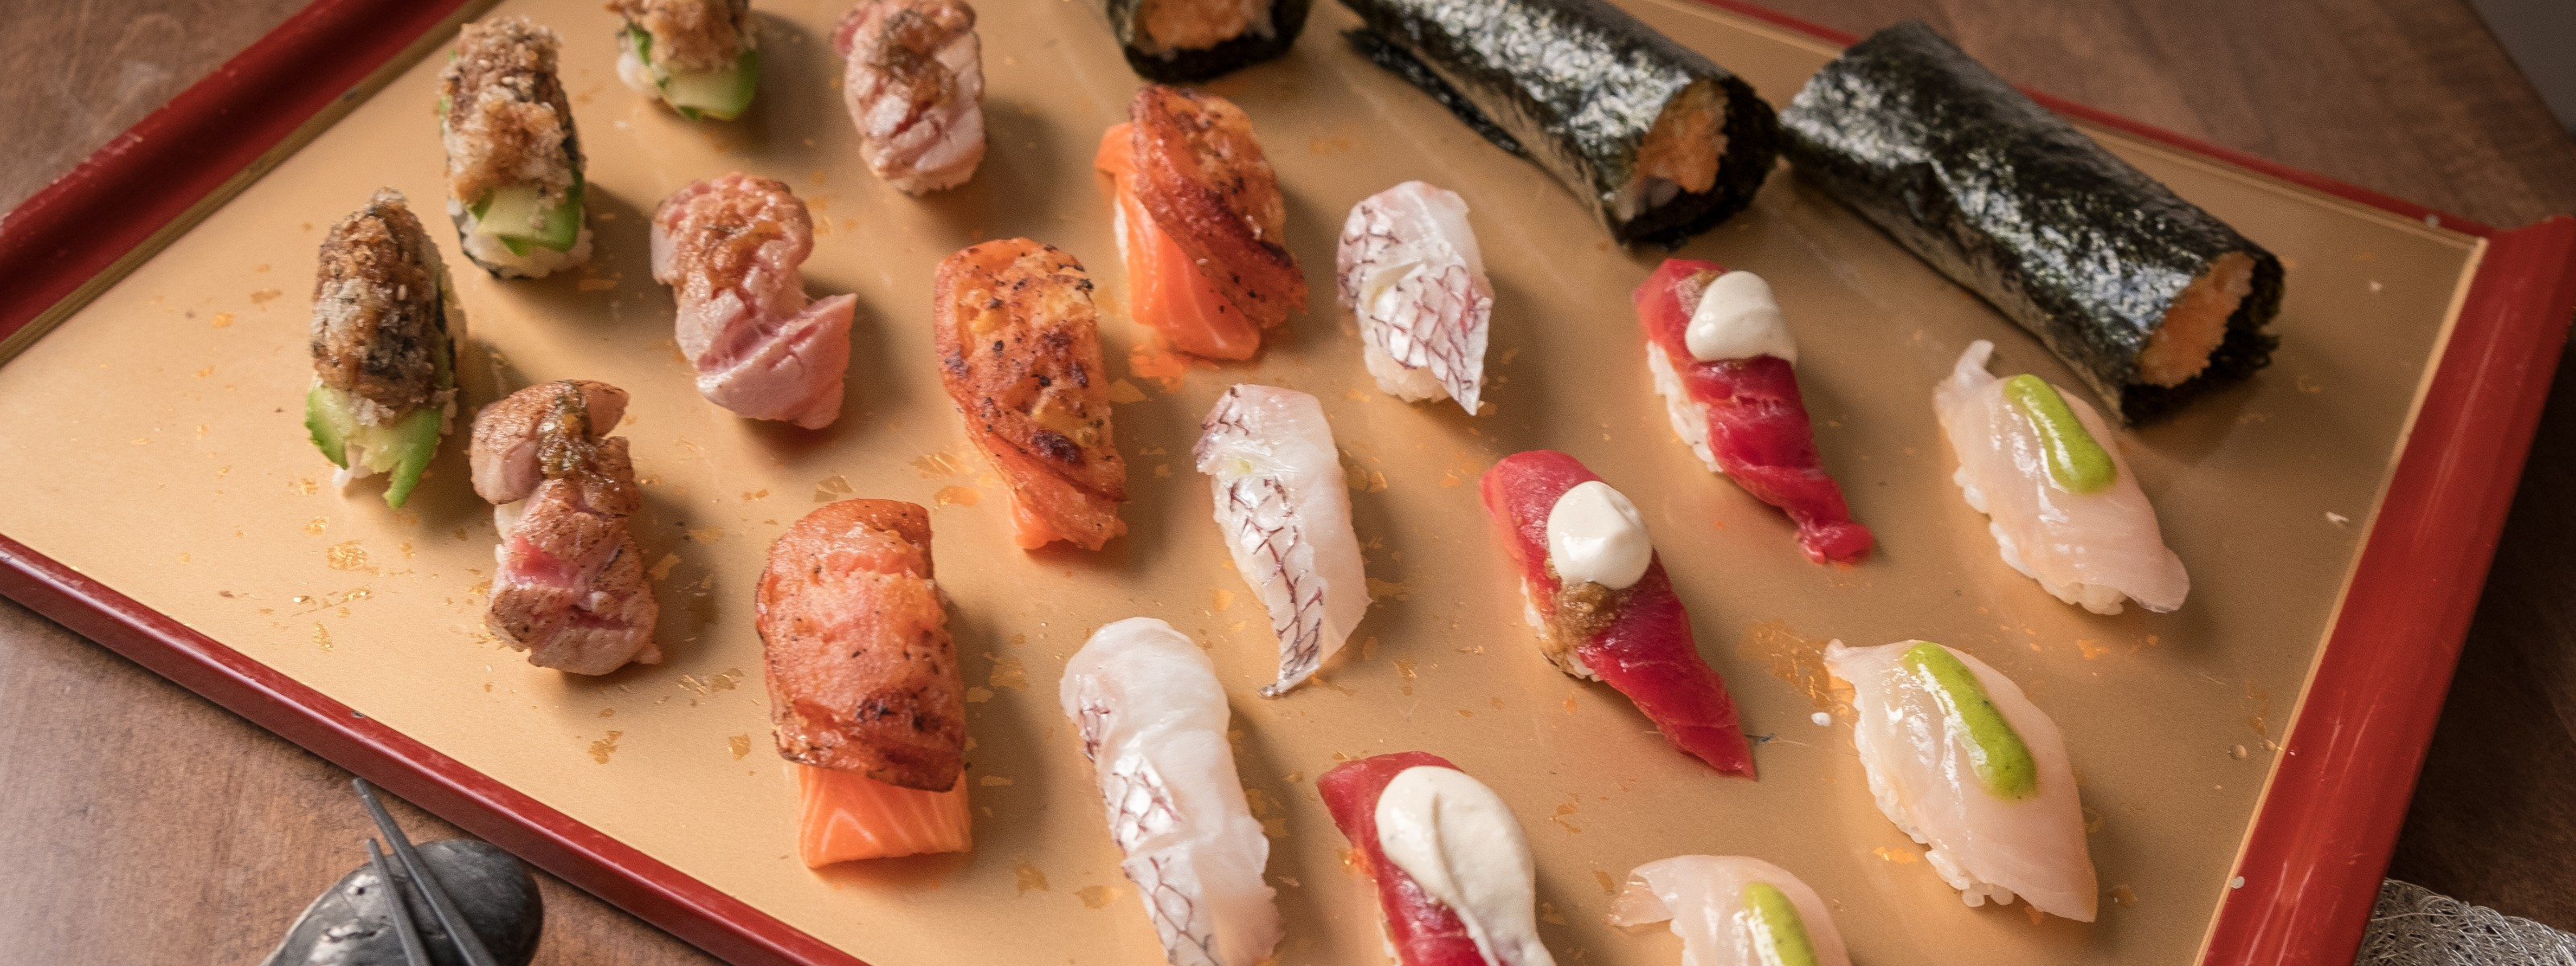 The Sushi Delivery Guide - New York - The Infatuation